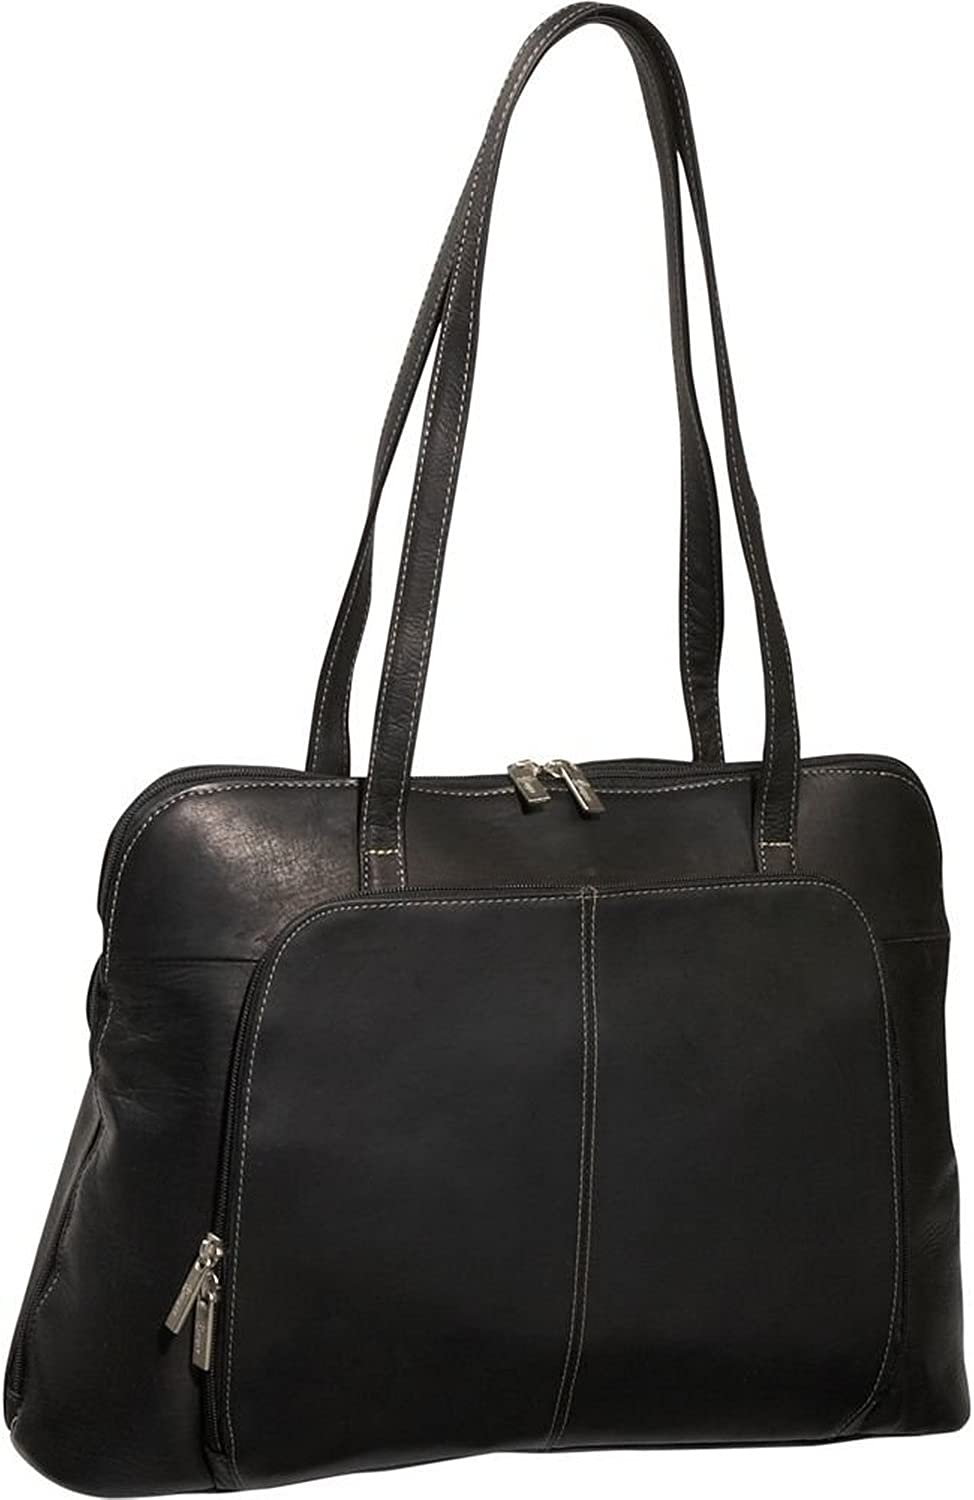 Royce Leather Women's Executive 15  Bag Briefcase Handmade in Colombian Leather Laptop Tote, Black, One Size